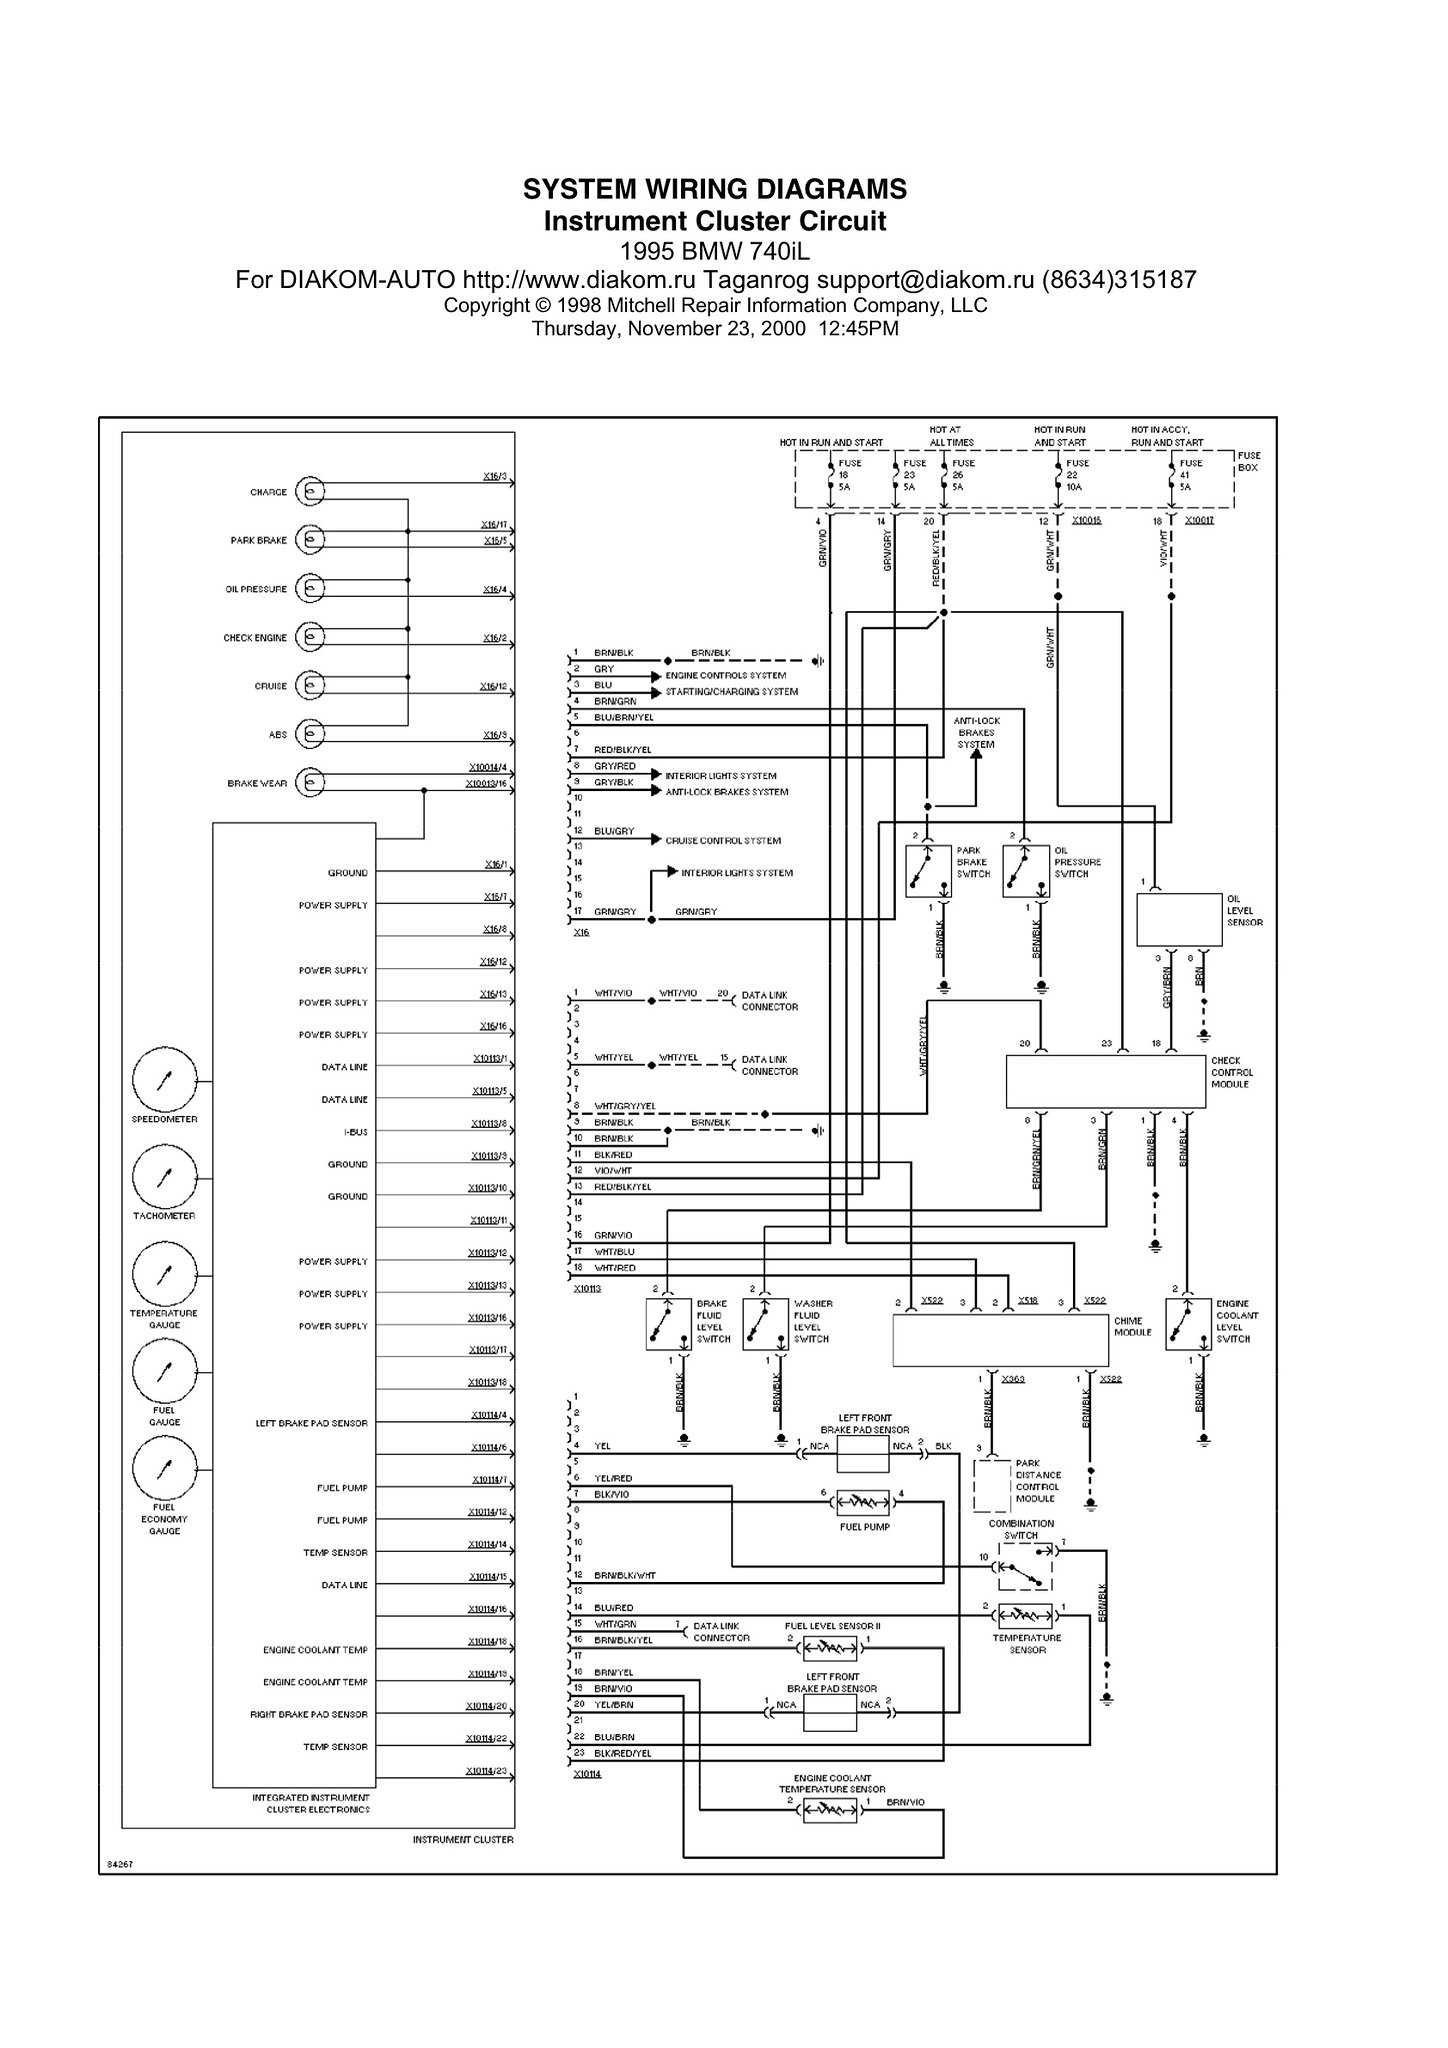 7703585142_dbc4ceb414_k bmw e39 wiring diagrams 1998 740i heated seat wiring diagram 2004 bmw 530i wiring diagrams at cos-gaming.co